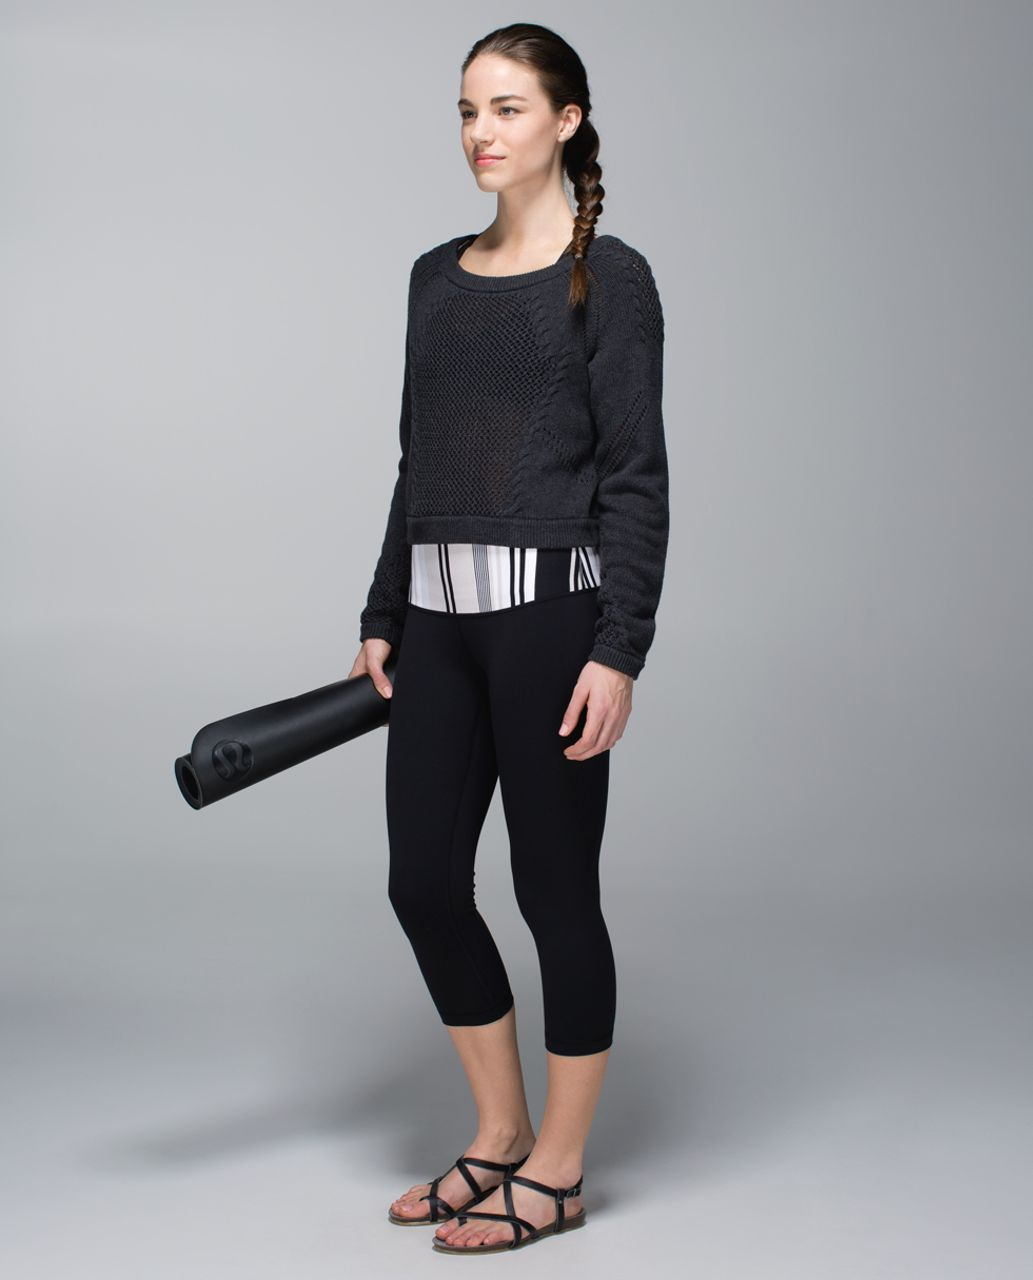 Lululemon Wunder Under Crop *Full-On Luon (Roll Down) - Black / Groovy Stripe Static Wave Dune